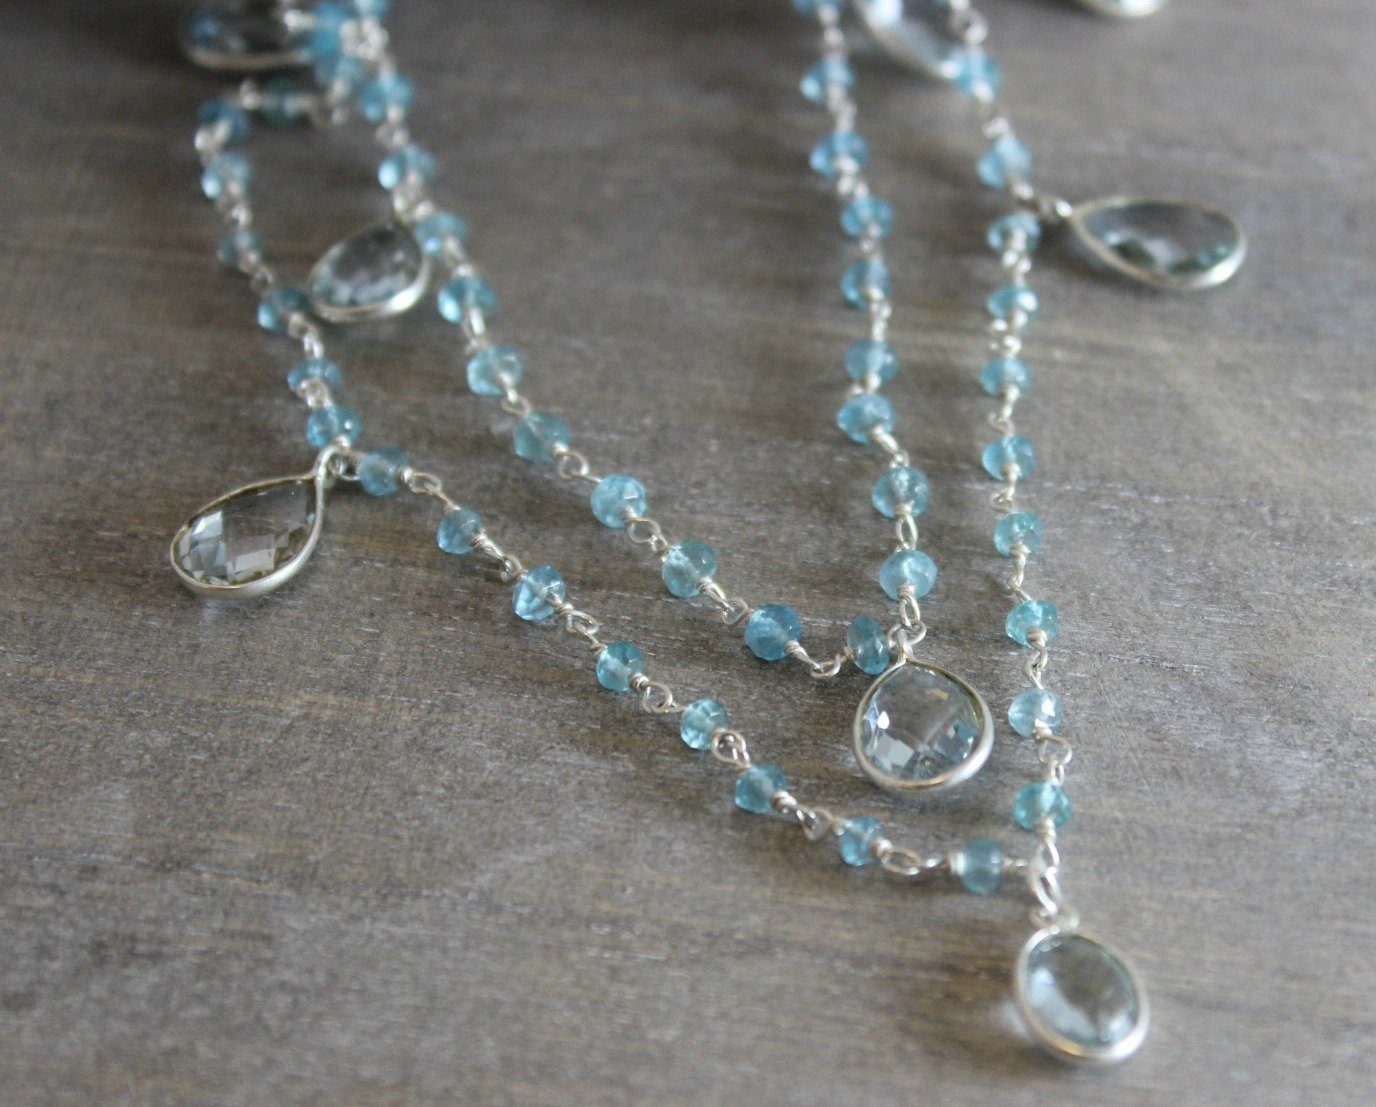 Blue Topaz and Apatite Wire Wrapped Long Sterling Silver Necklace, 47 inches mother's day gift idea